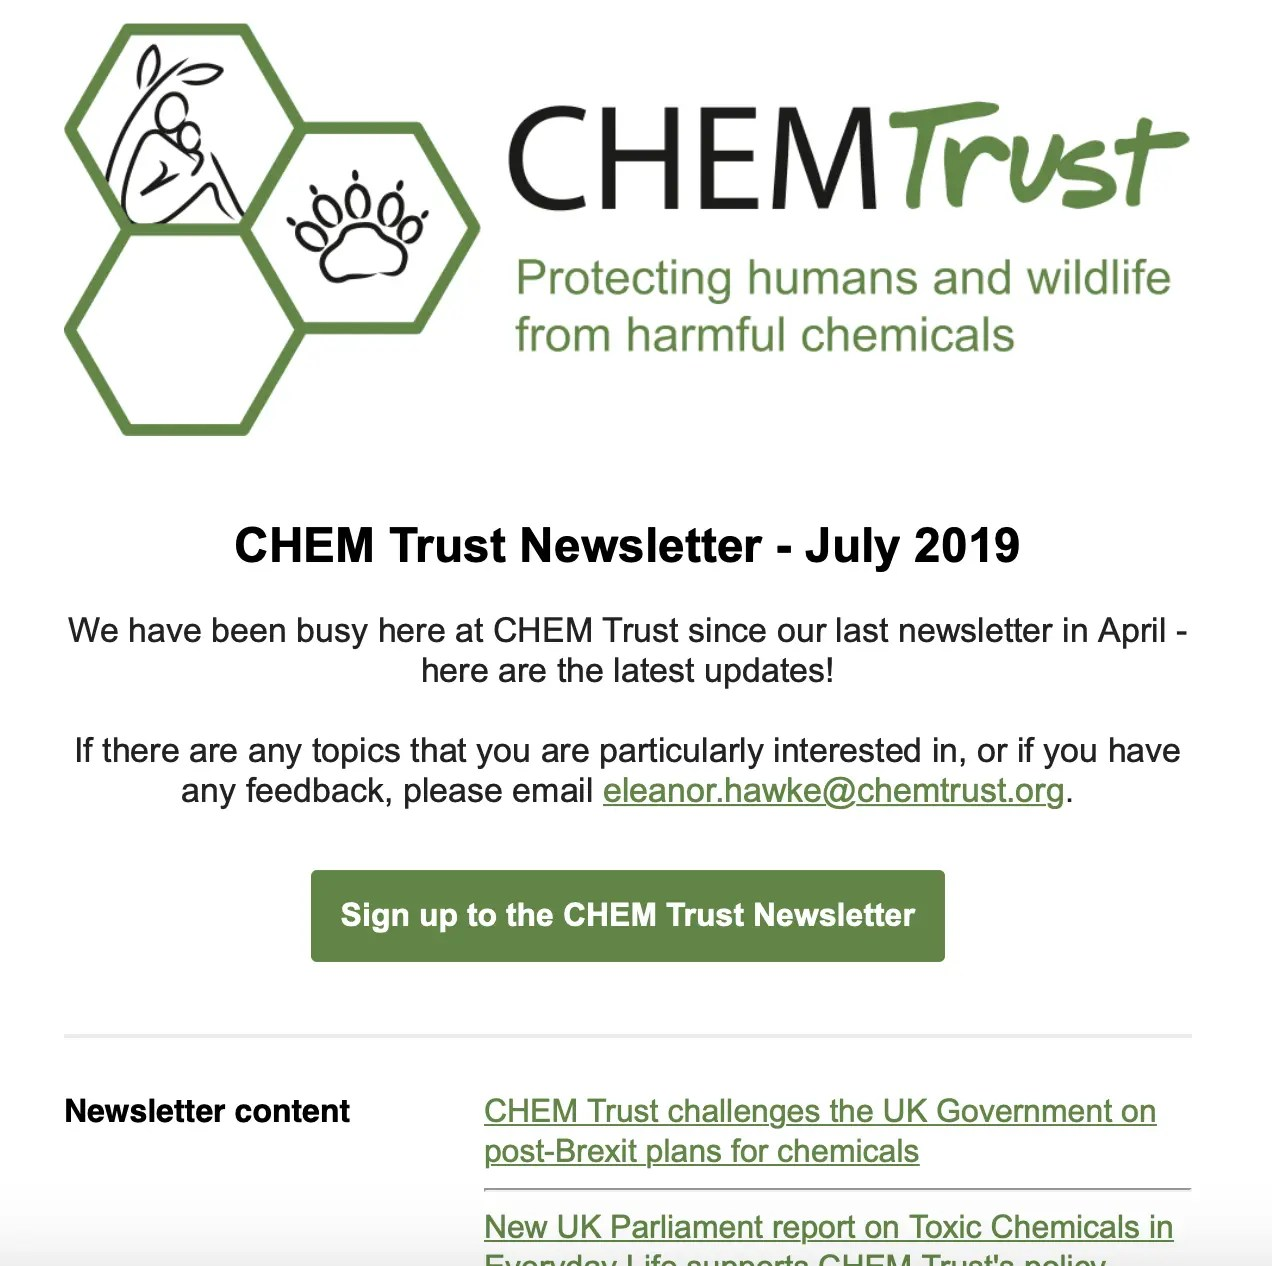 CHEM Trust — Protecting humans and wildlife from harmful